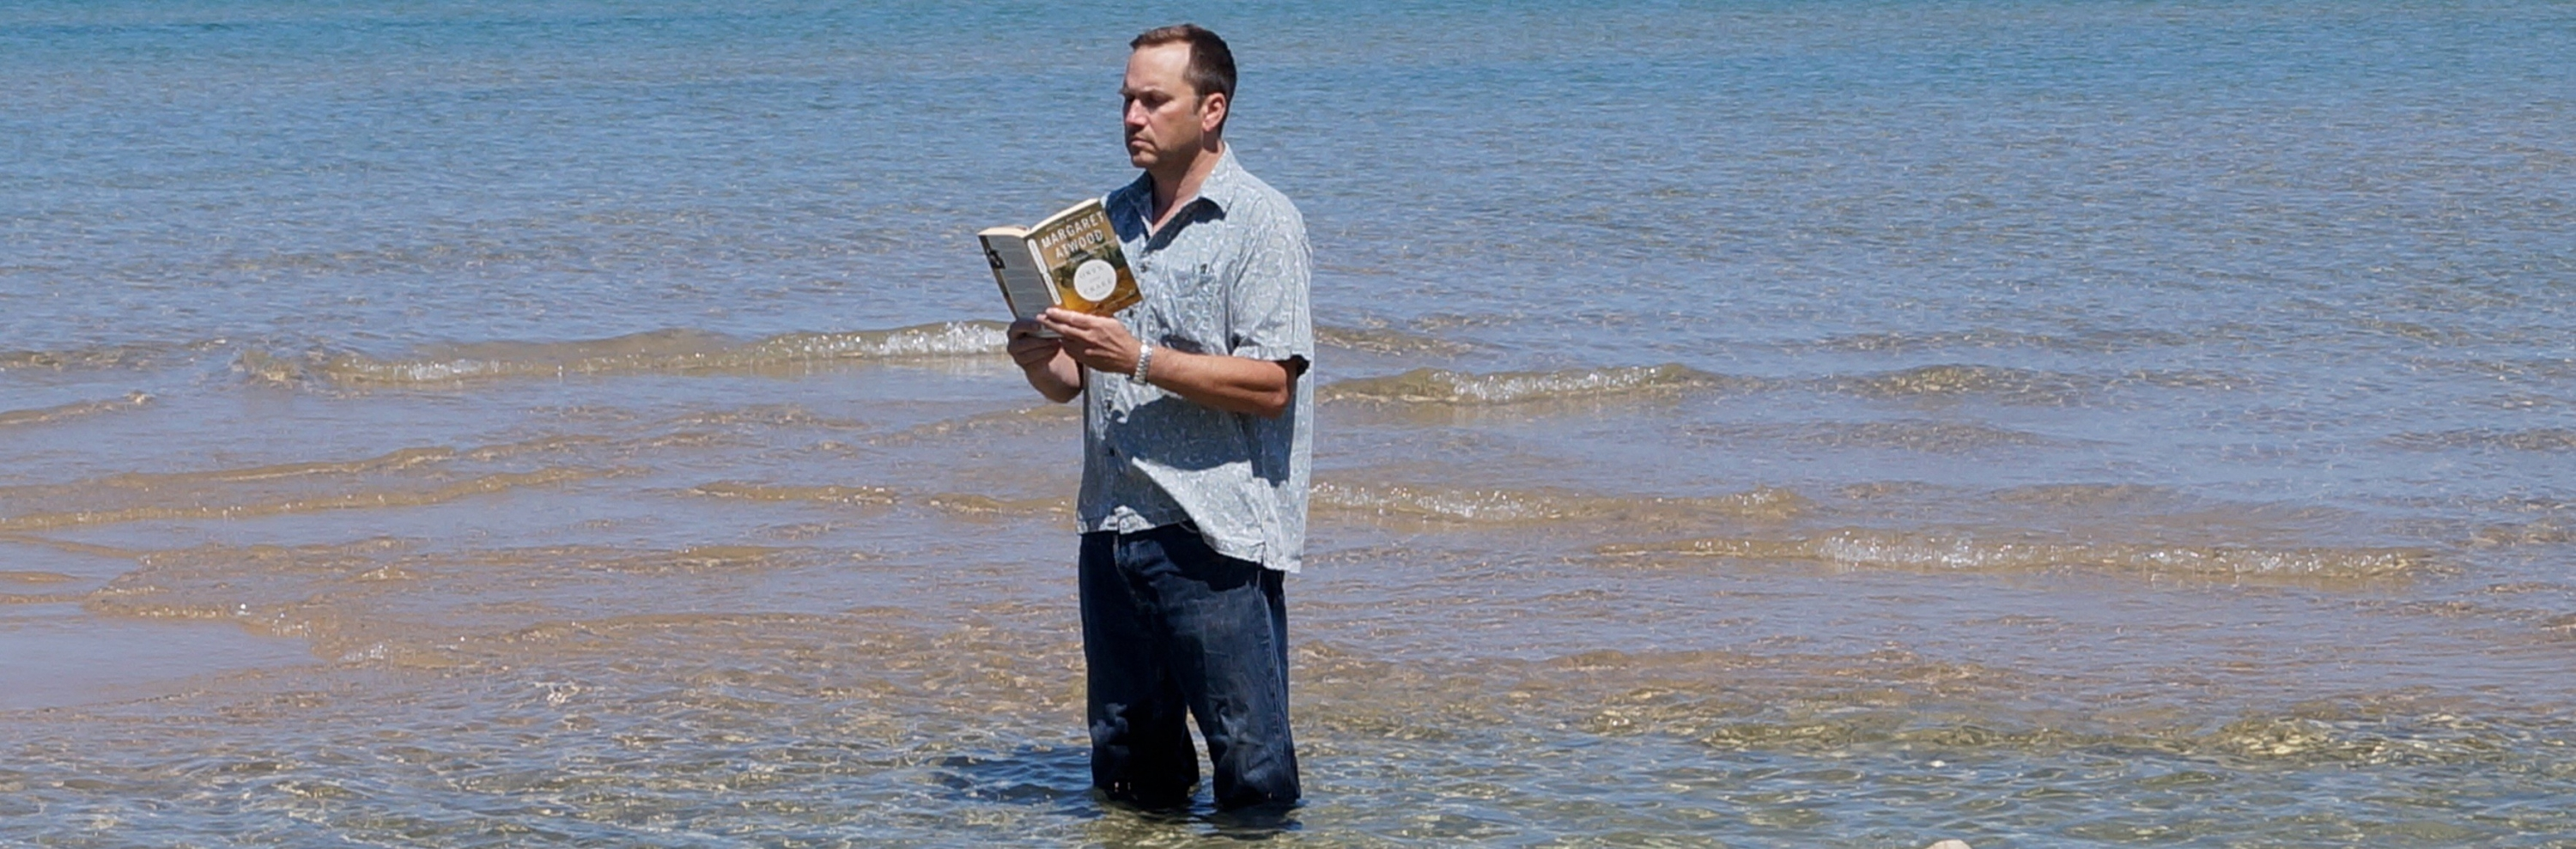 Professor McMurry reading a book in the water